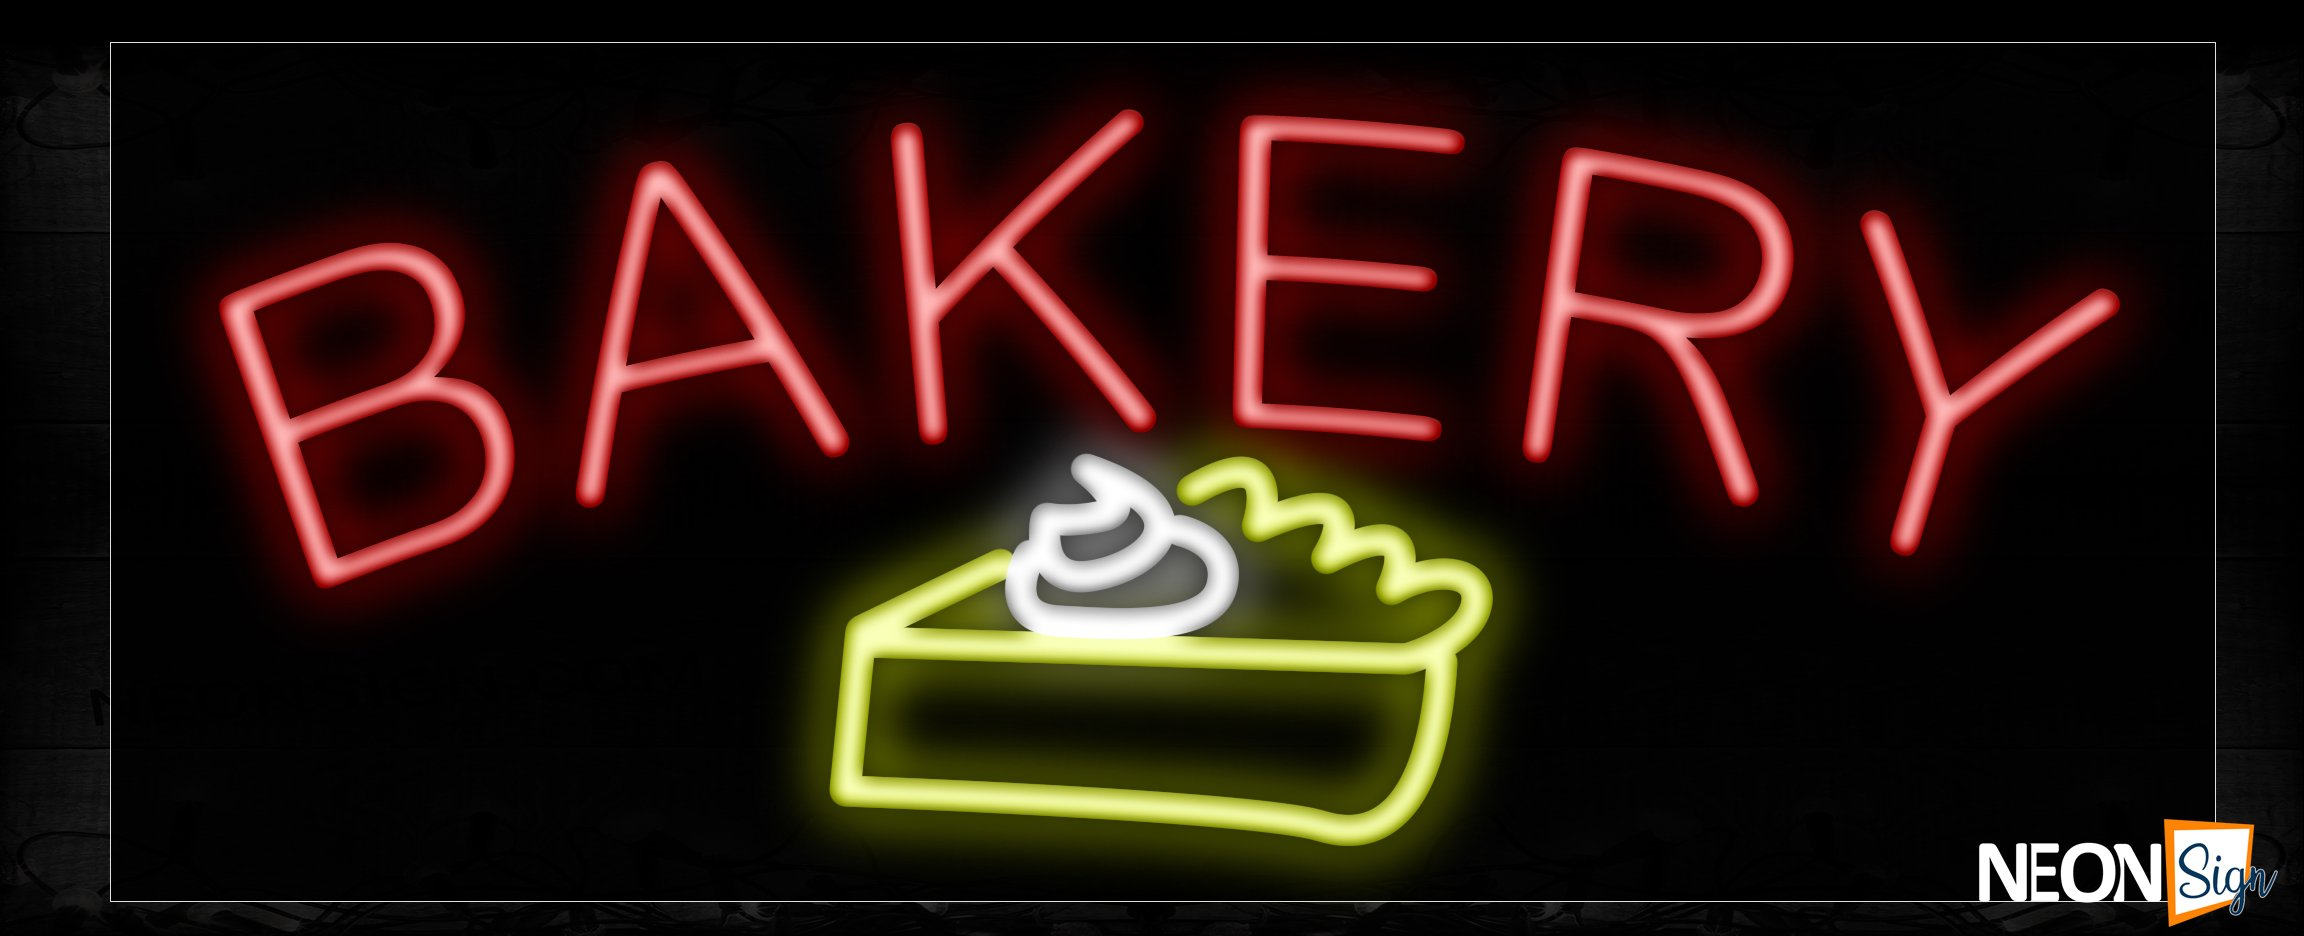 Image of 10015 Bakery with pie logo Neon Sign_13x32 Black Backing